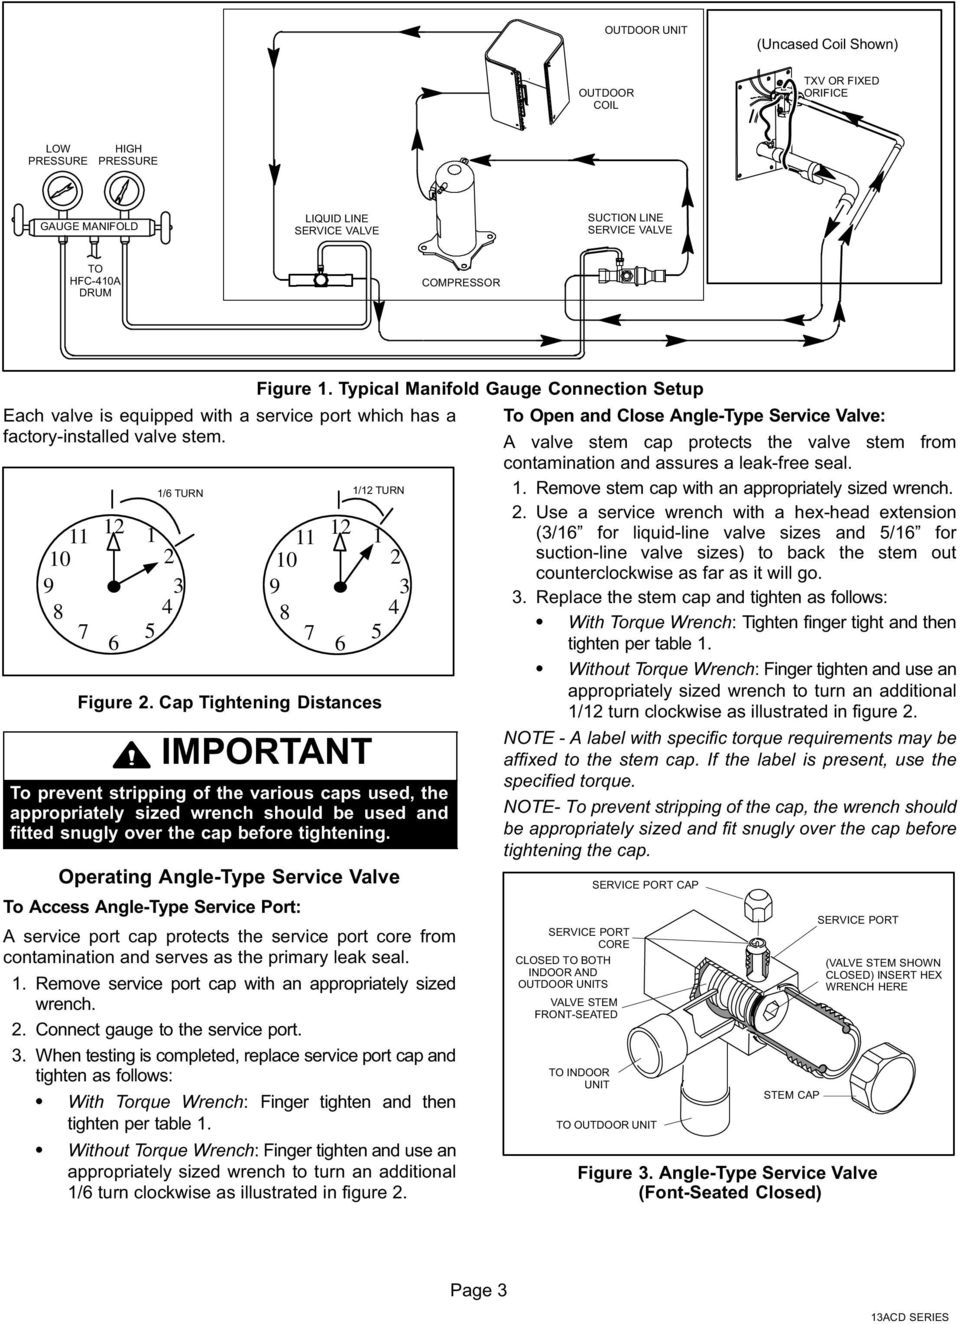 Installation Instructions Pdf Internal Coil Wiring Diagram 12v Compressor Typical Manifold Gauge Connection Setup 11 12 10 9 8 7 6 1 Turn